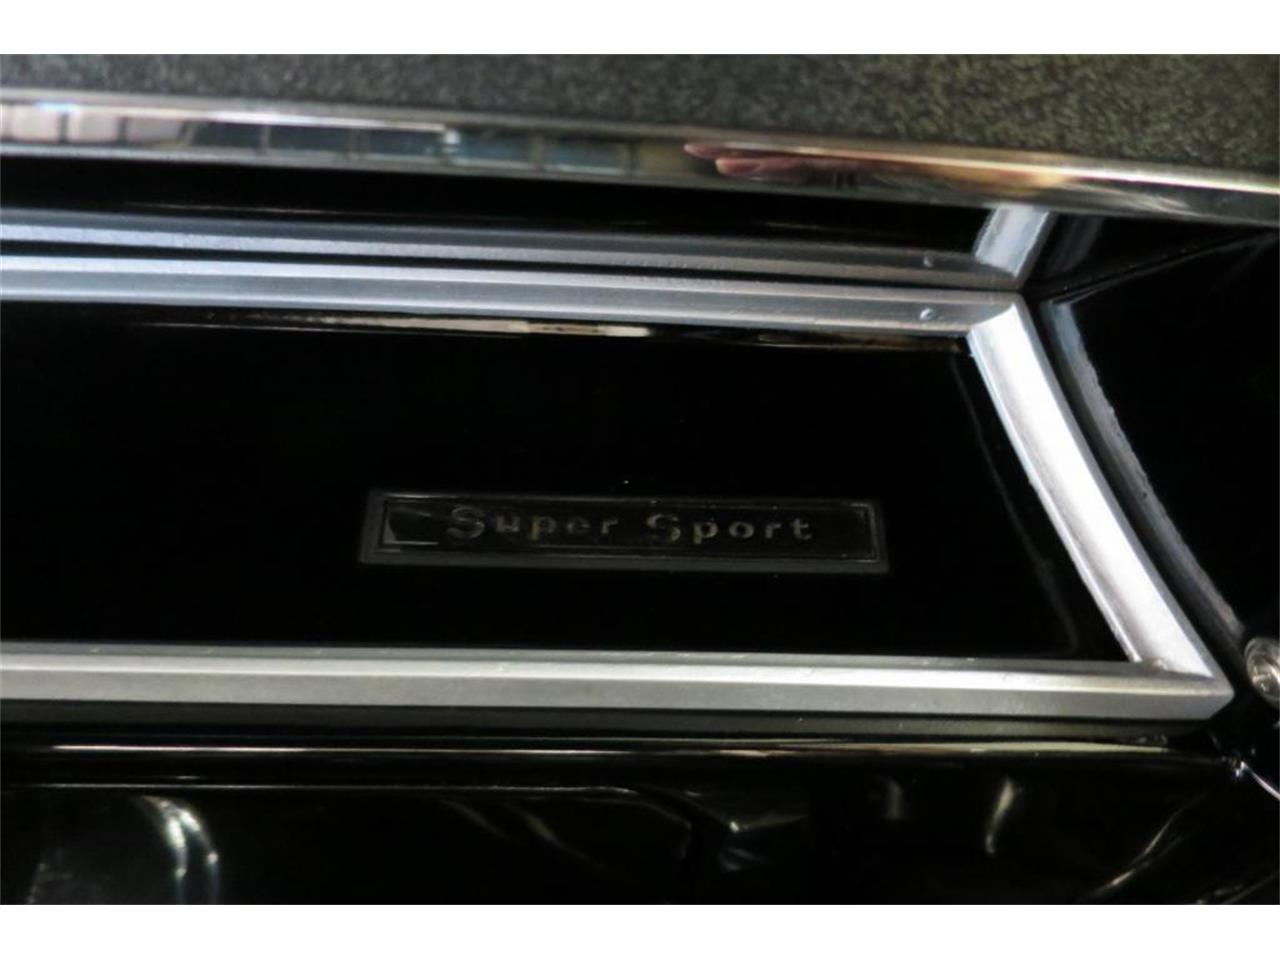 Large Picture of Classic '66 Chevelle located in Connecticut - $43,500.00 Offered by Napoli Classics - LDNC